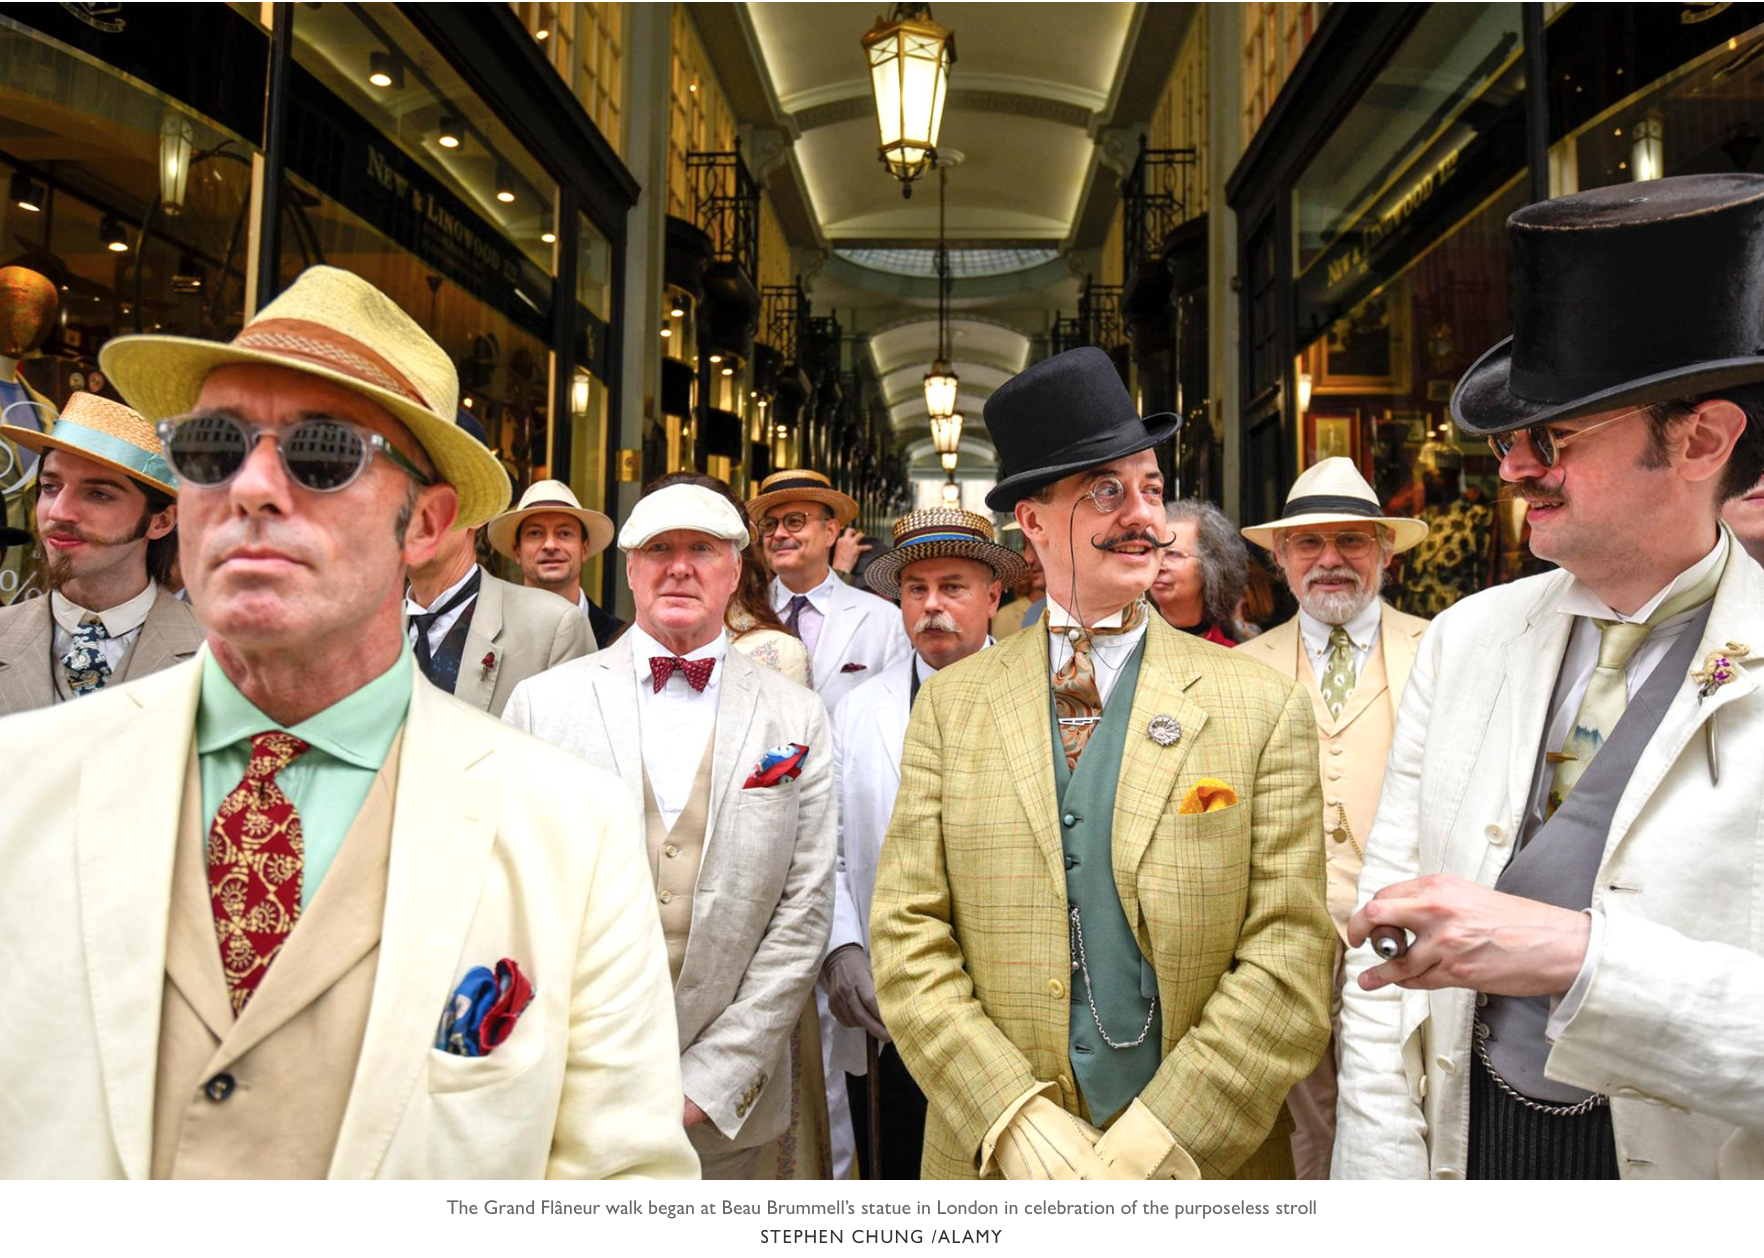 The Times  featured this dapper picture in their 'News in Pictures' round-up